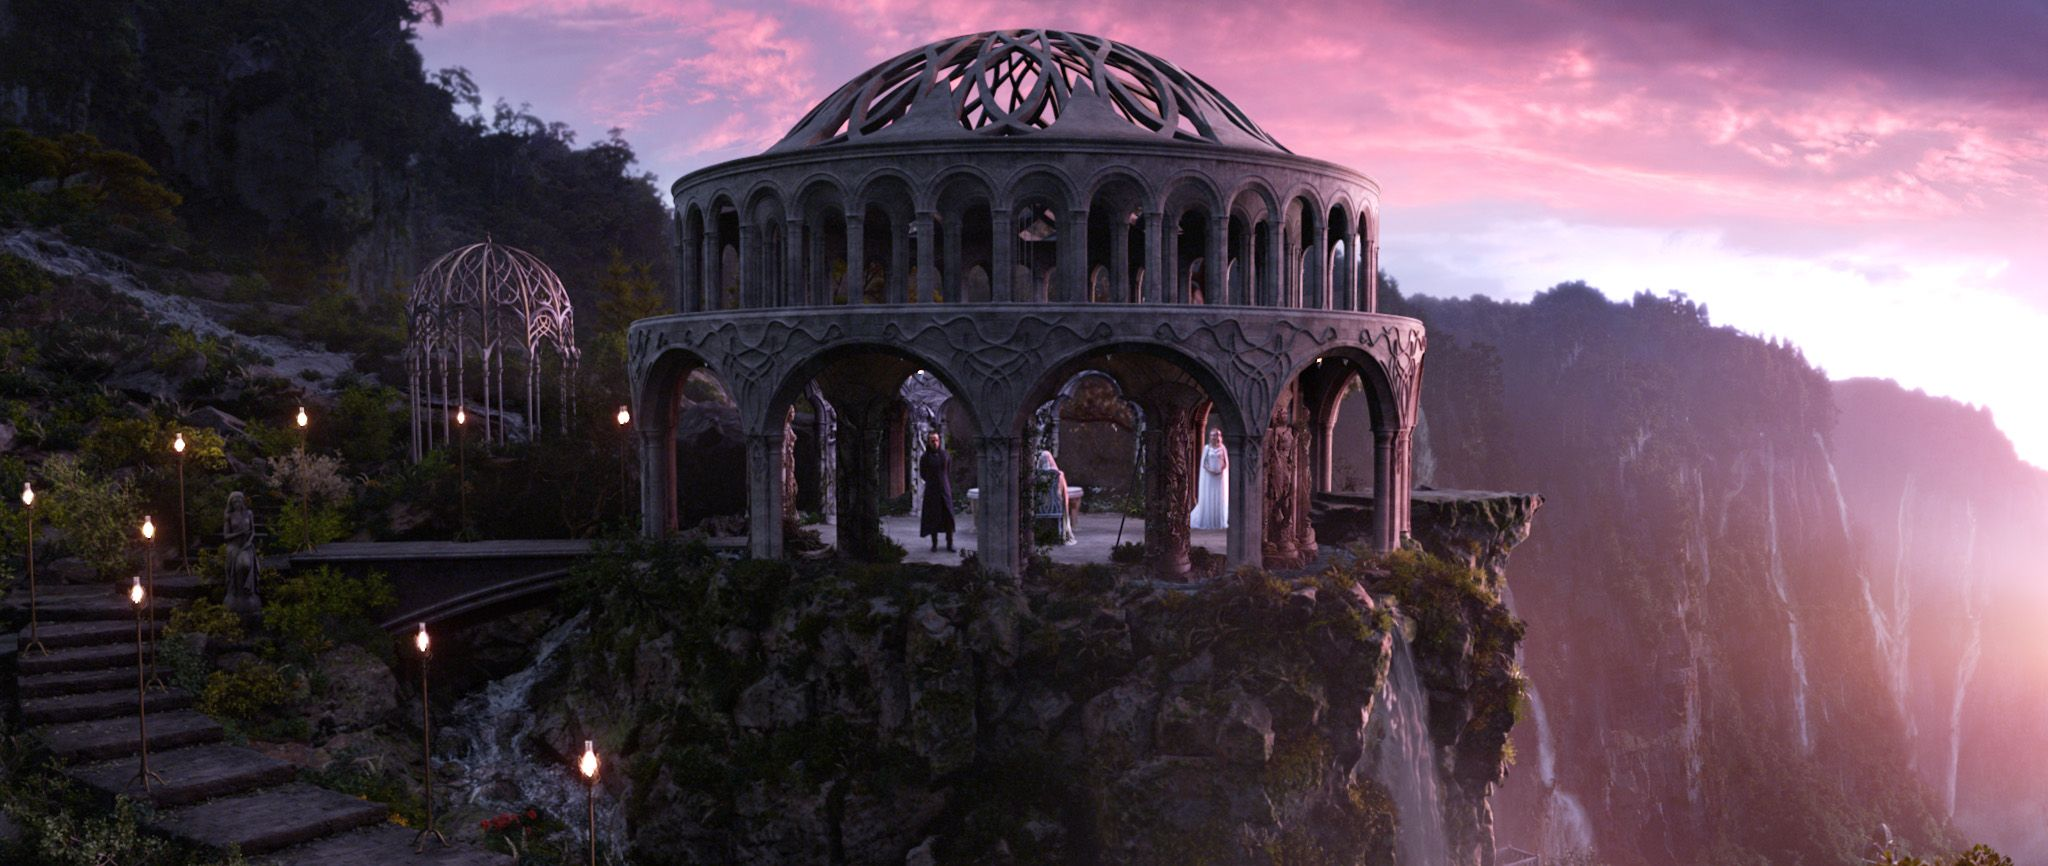 lord of the rings rivendell architecture the hobbit an